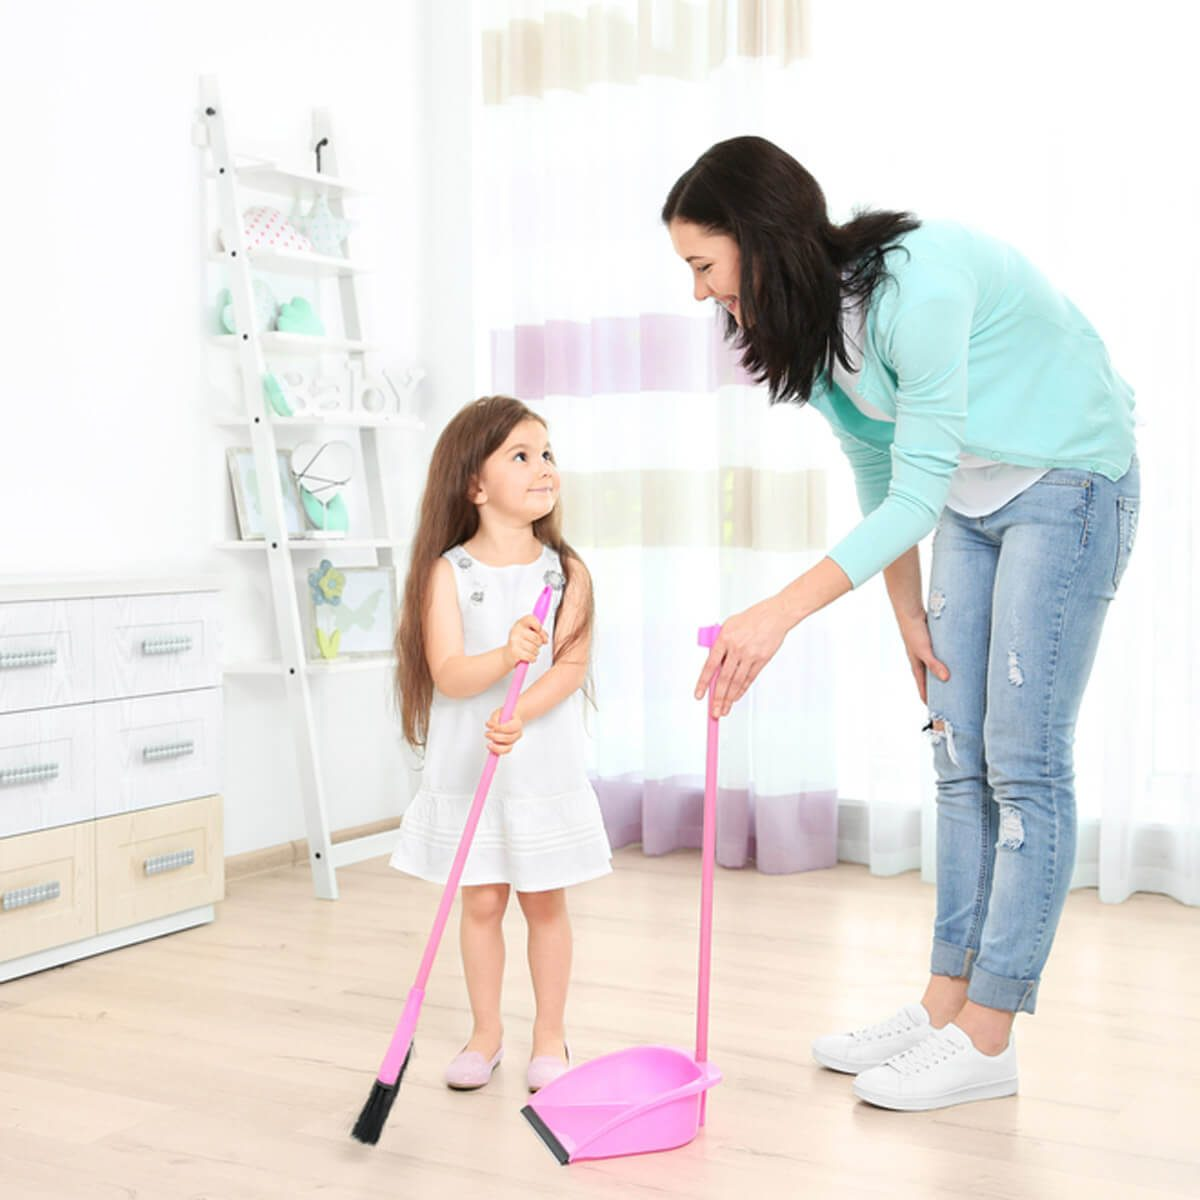 dfh6_shutterstock_448109434 kids broom kit